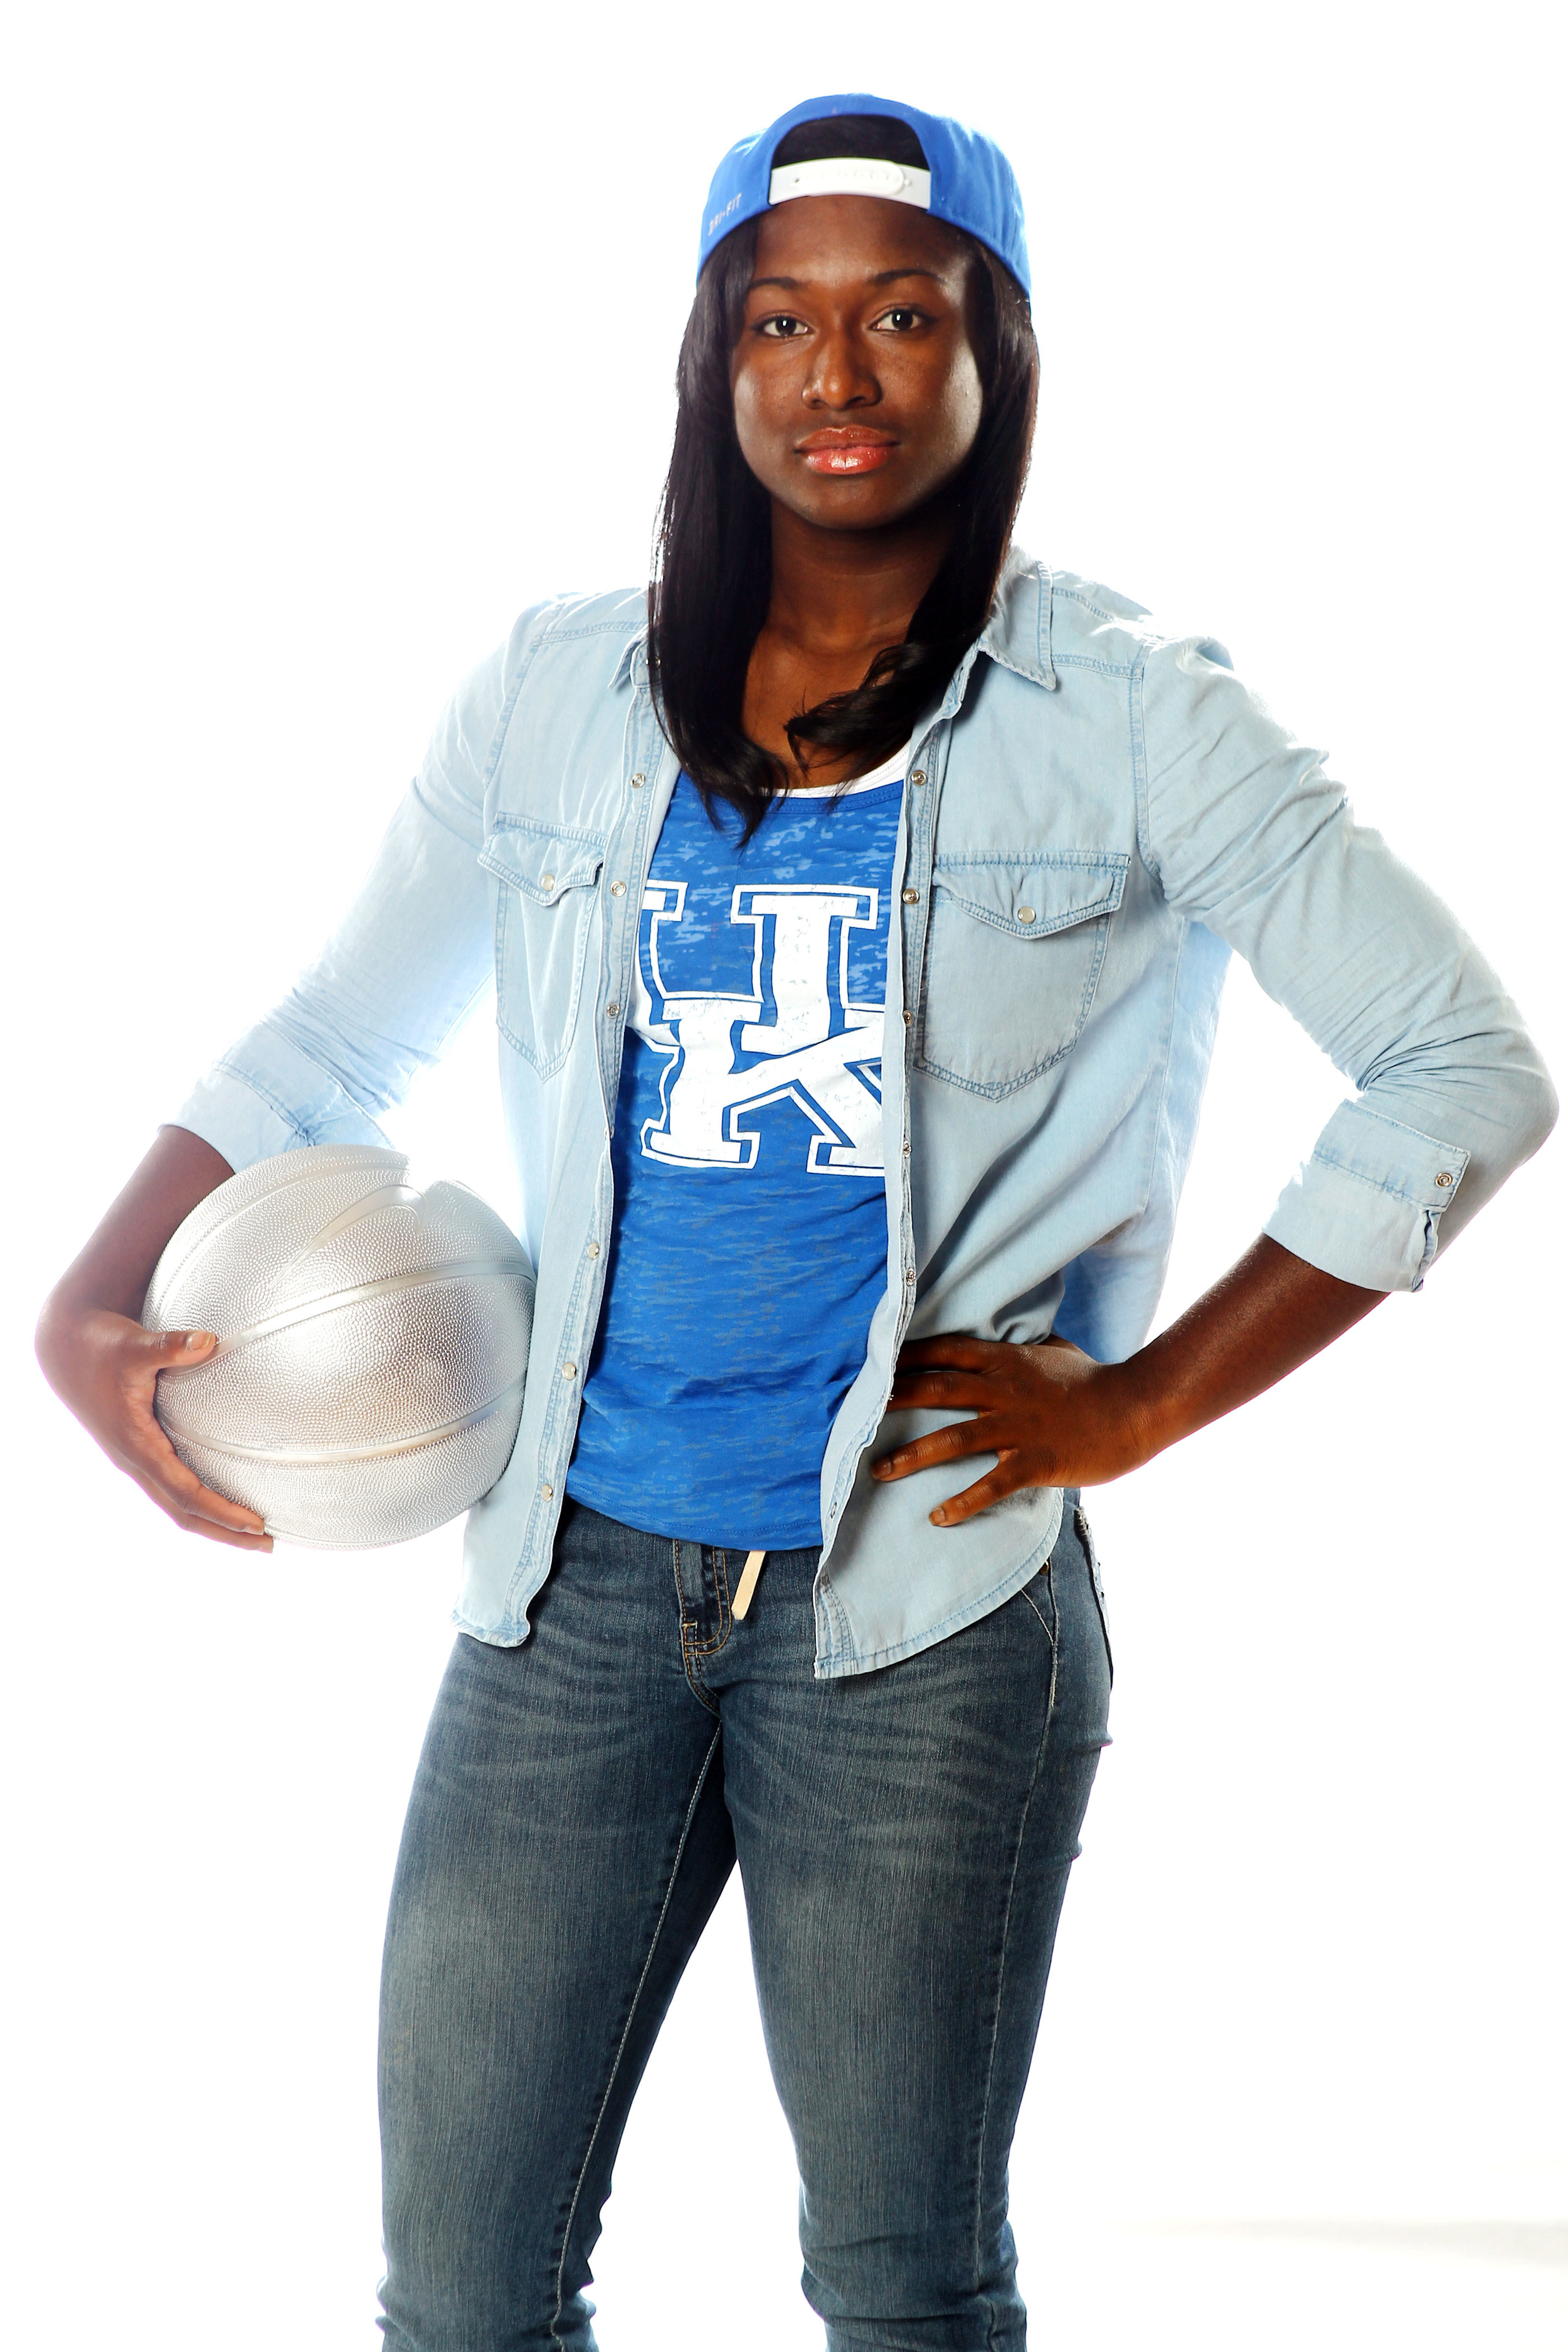 UK_wbball_outfits_077.jpg